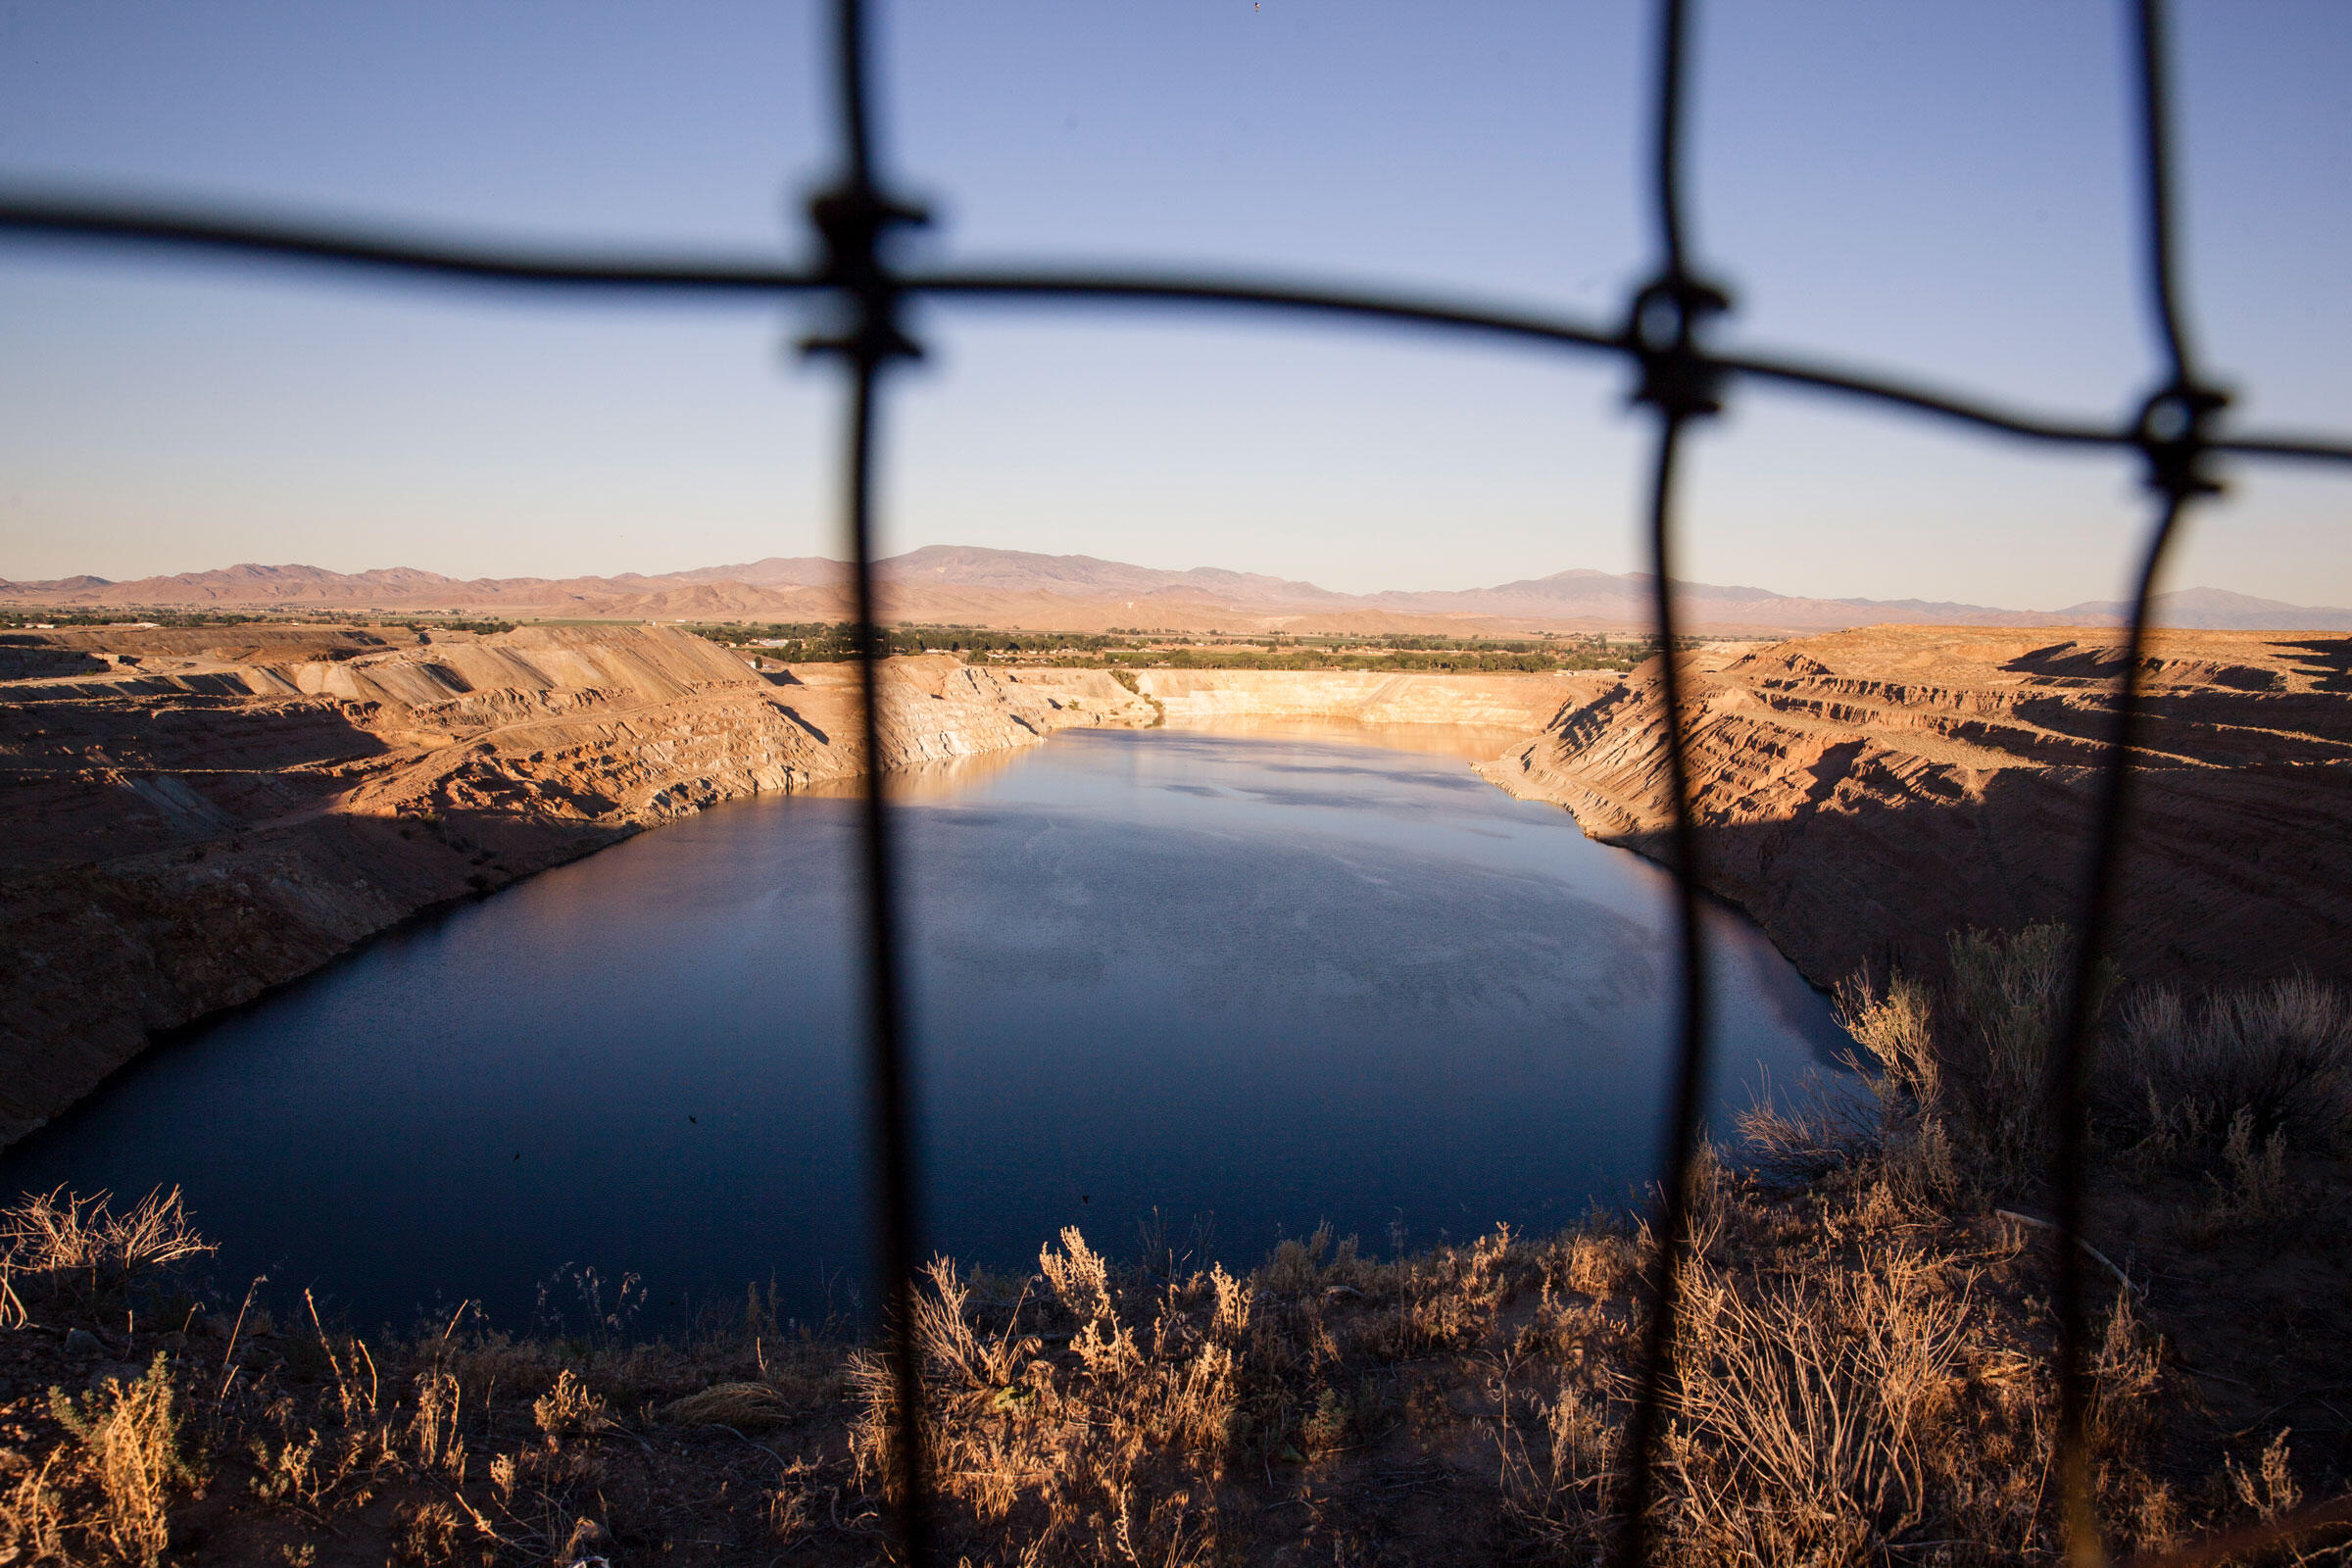 The pit lake at the Anaconda Mine near Yerington, Nevada. The pit is a half mile wide, and 810 feet deep. Maggie Starbard